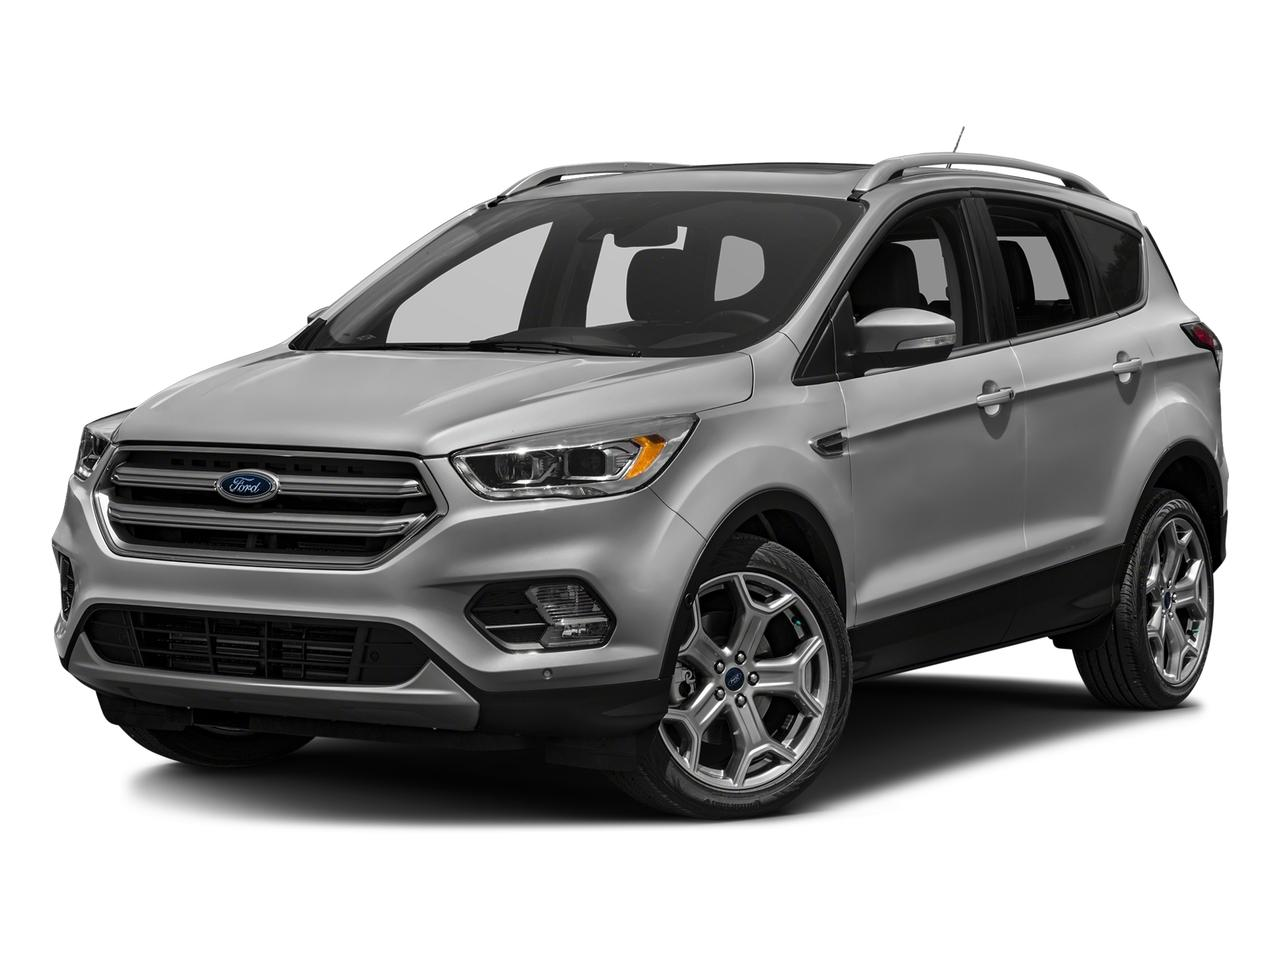 2018 Ford Escape Vehicle Photo in Quakertown, PA 18951-1403